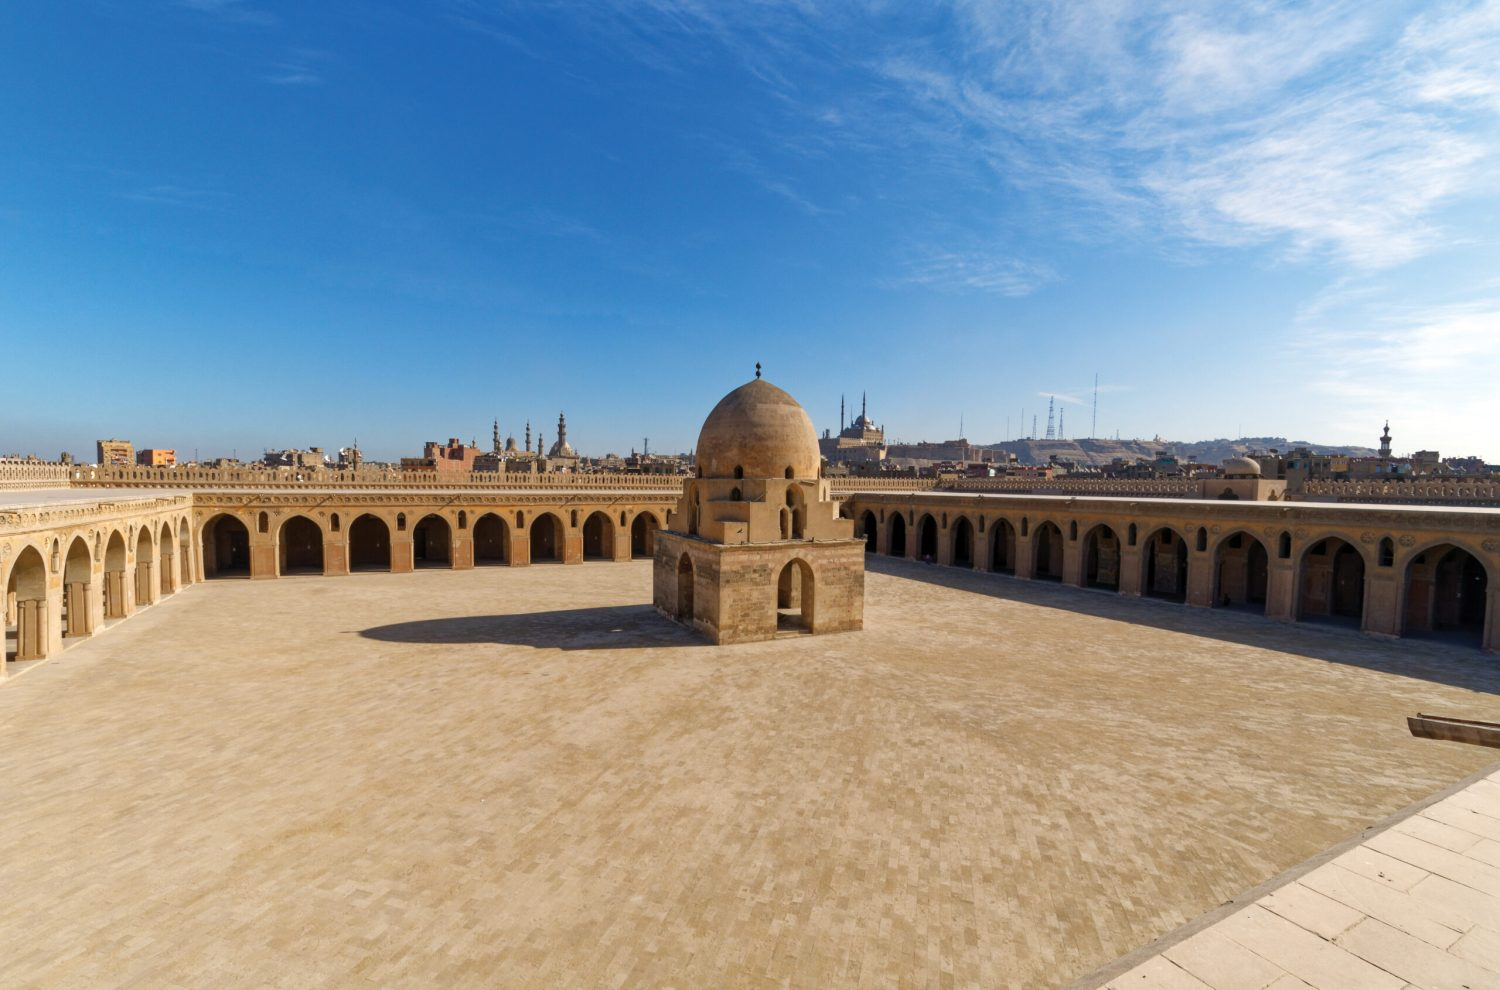 previous page The inner (left) and outer walls of the mosque immediately create a quiet space after entering the mosque precinct from the busy streets of Cairo outside. To the right stands the 1357 complex of the Mamluk amir Sarghatmish. above The Great Mosque of ibn Tulun consists of arcades on four sides, surrounding a large open court.